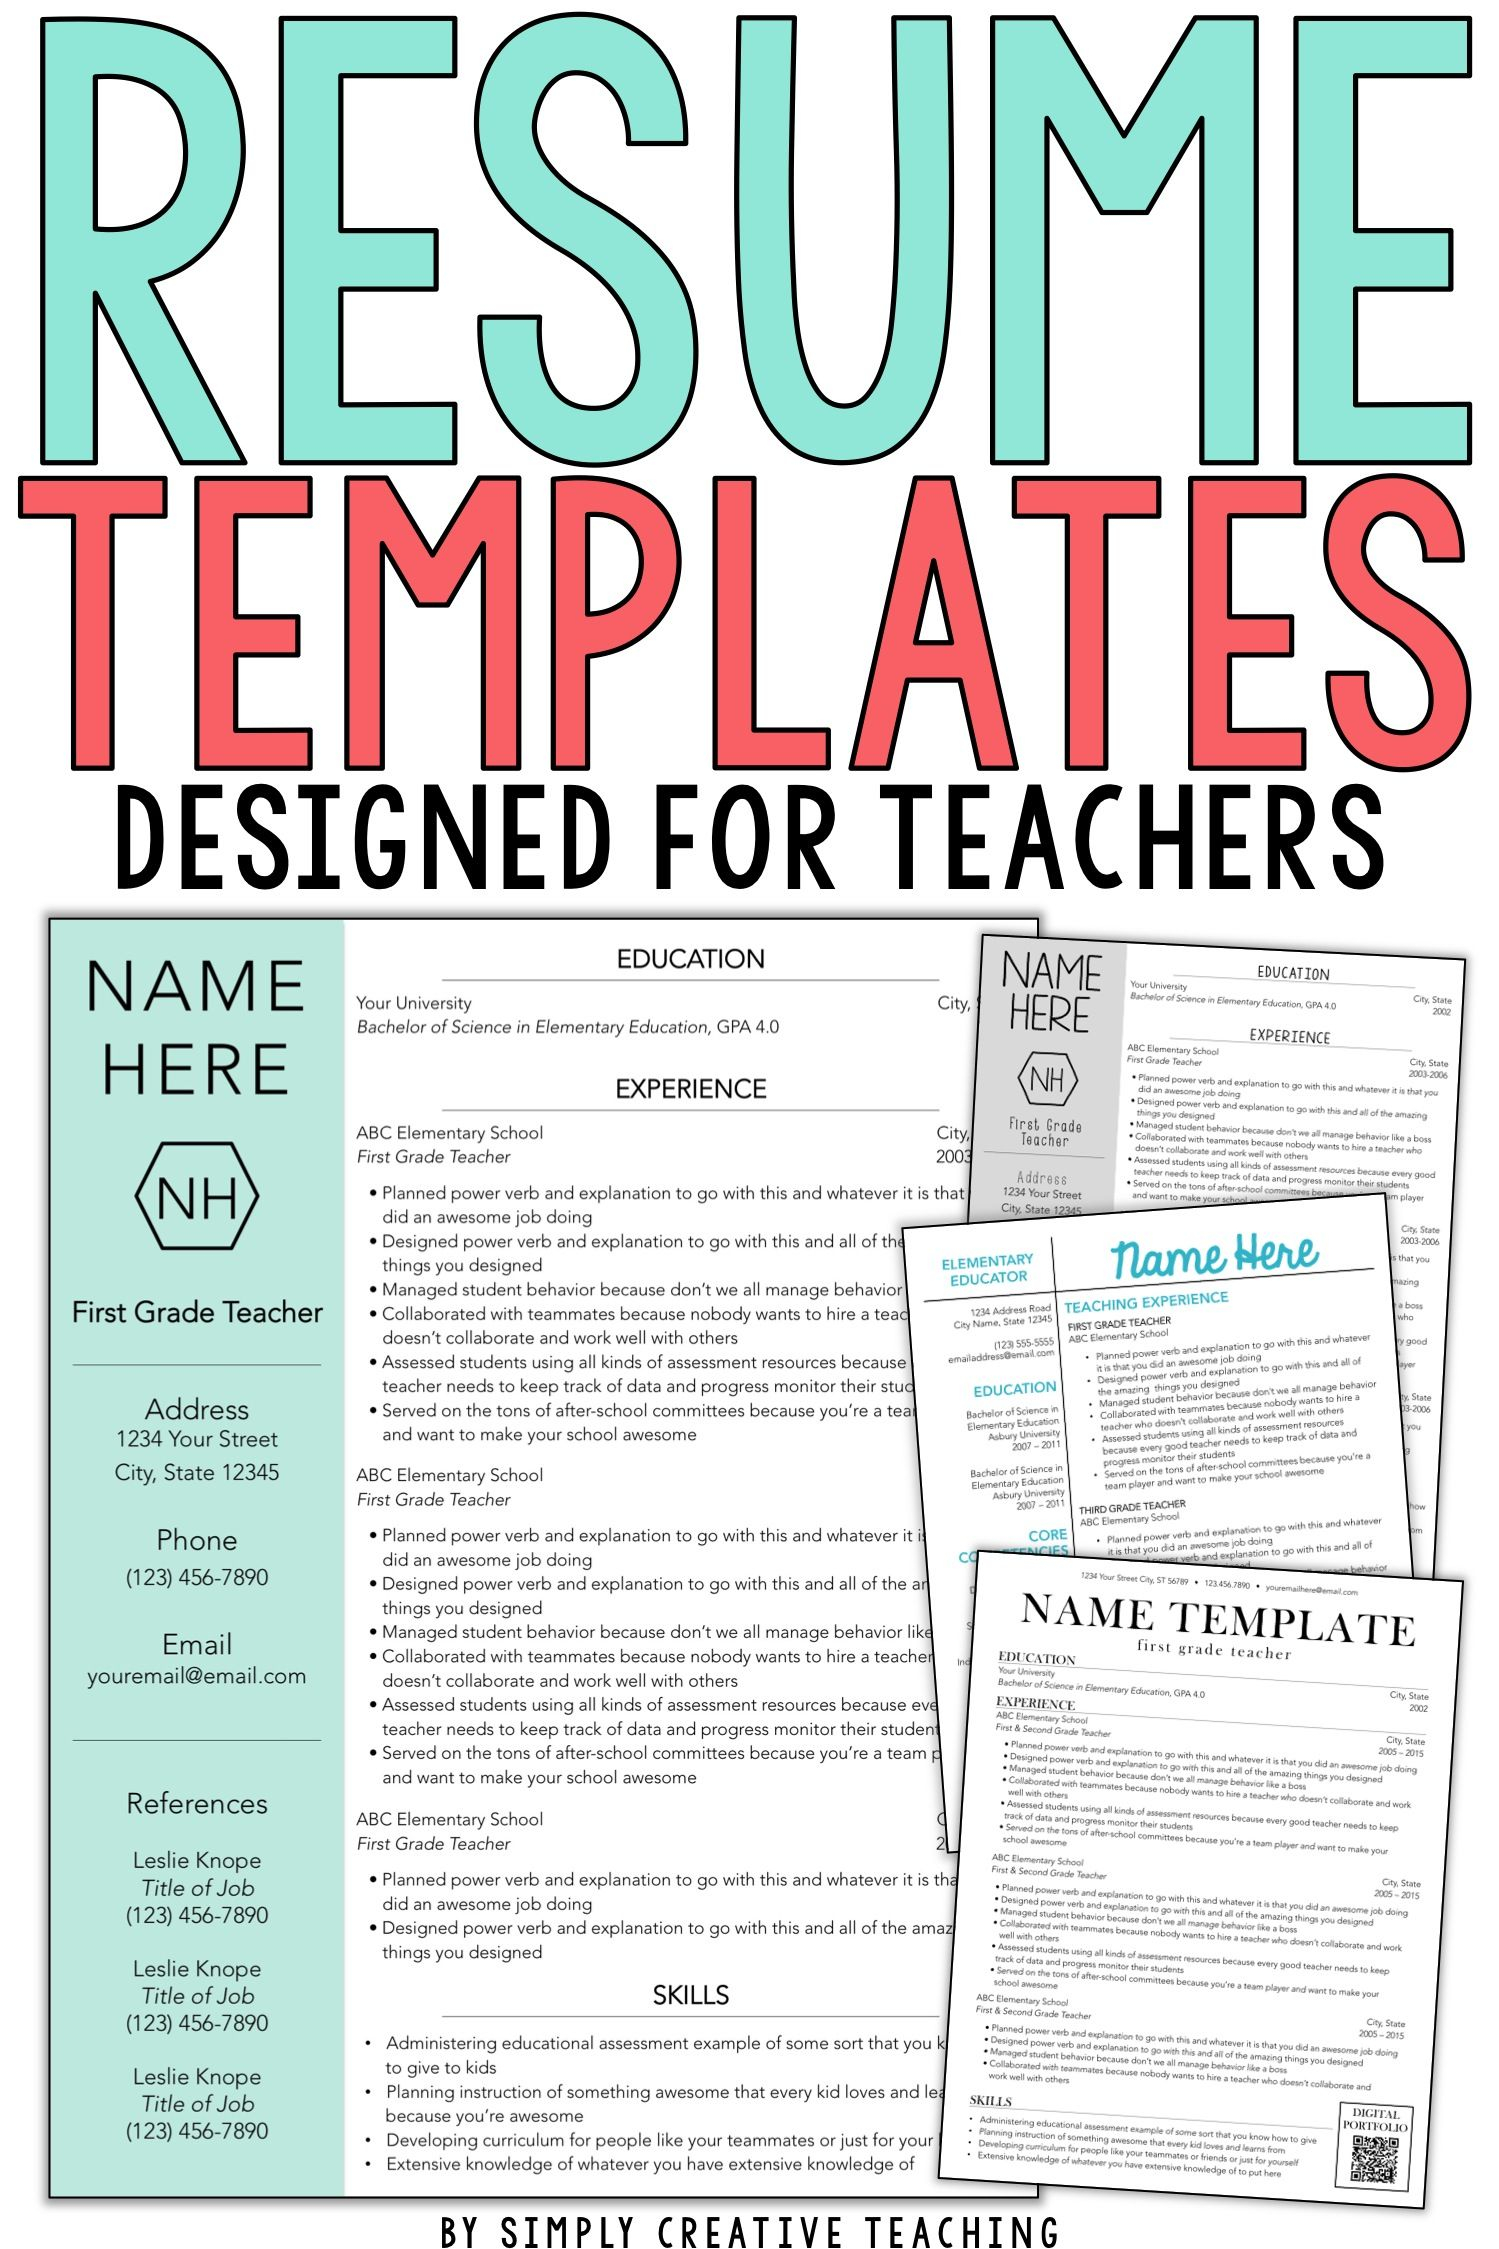 Land your ideal teaching job whether it's your first year and you have no experience or you just want to update your teaching portfolio these editable teacher resumes are unique & stand out The design of each resume template is simple & creative and the design ideas included are the perfect way to showcase your skills These editable resumes can work for elementary middle or high school teachers even special area teachers or special education teachers Show your profile & objectives